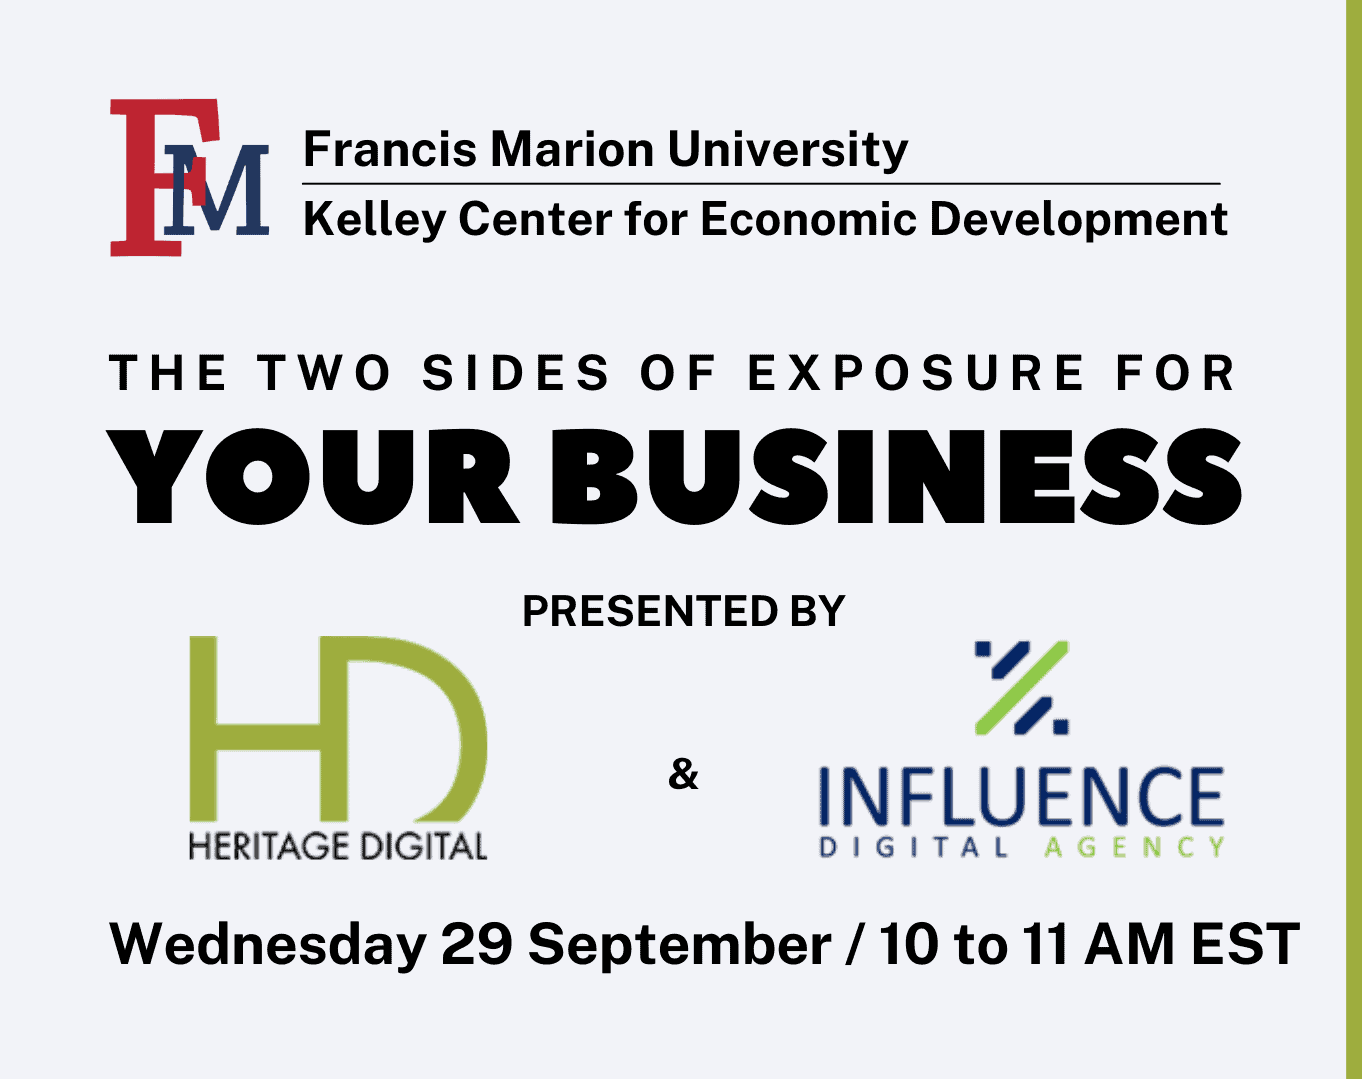 The Two Sides of Exposure for Your Business